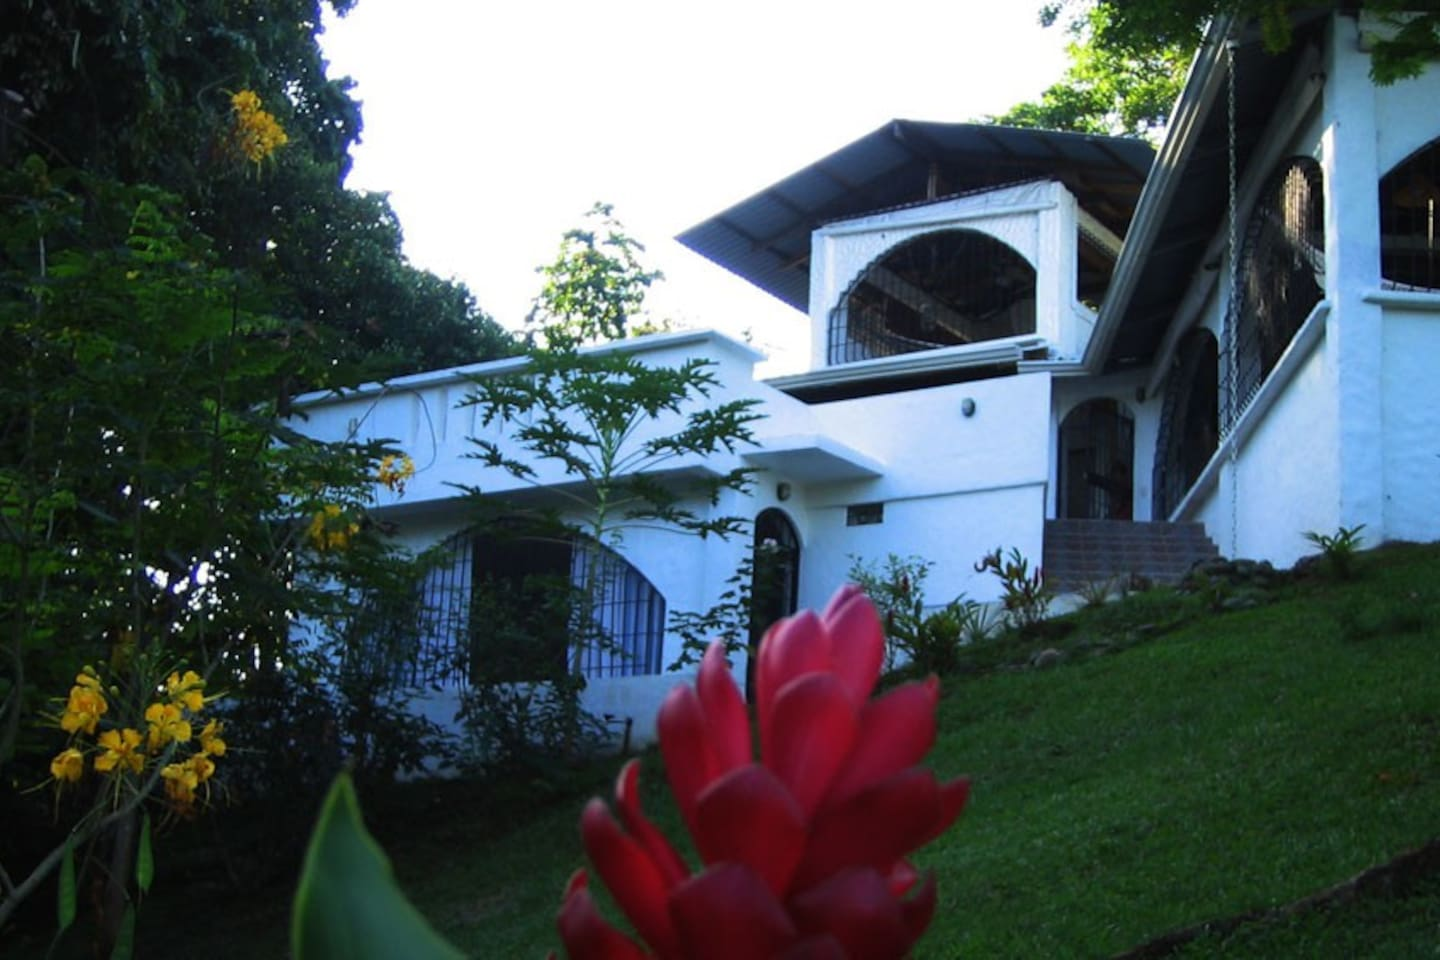 View of the house from the gardens below.